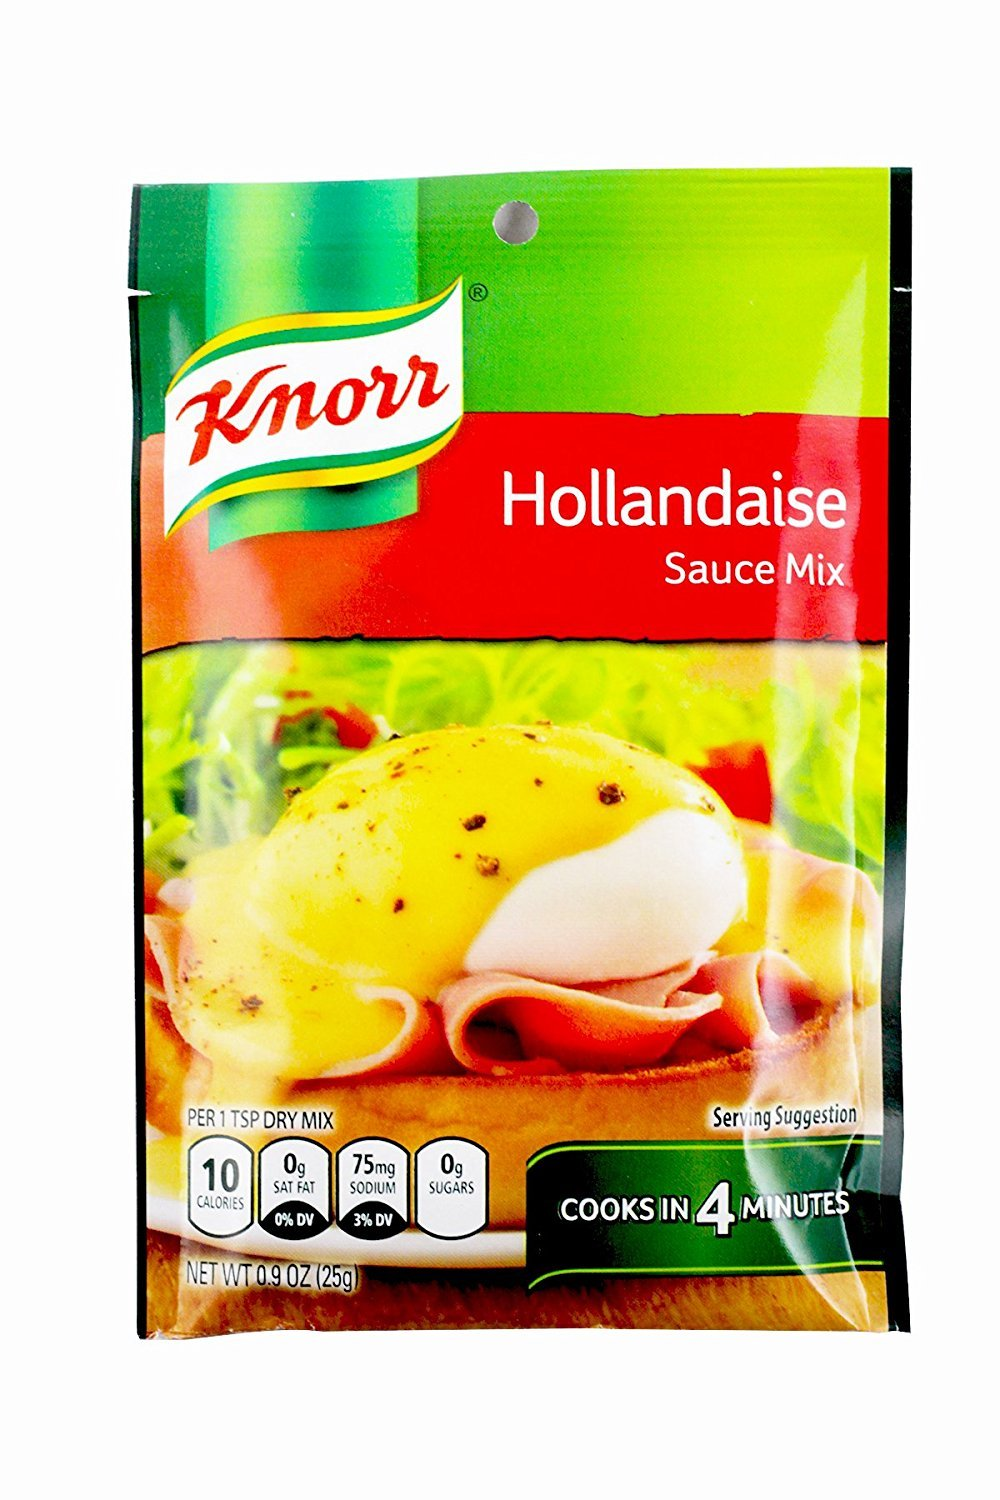 KNORR MIX SCE CLSC HOLLANDAISE, 0.9 OZ, Pack of 6 by Knorr